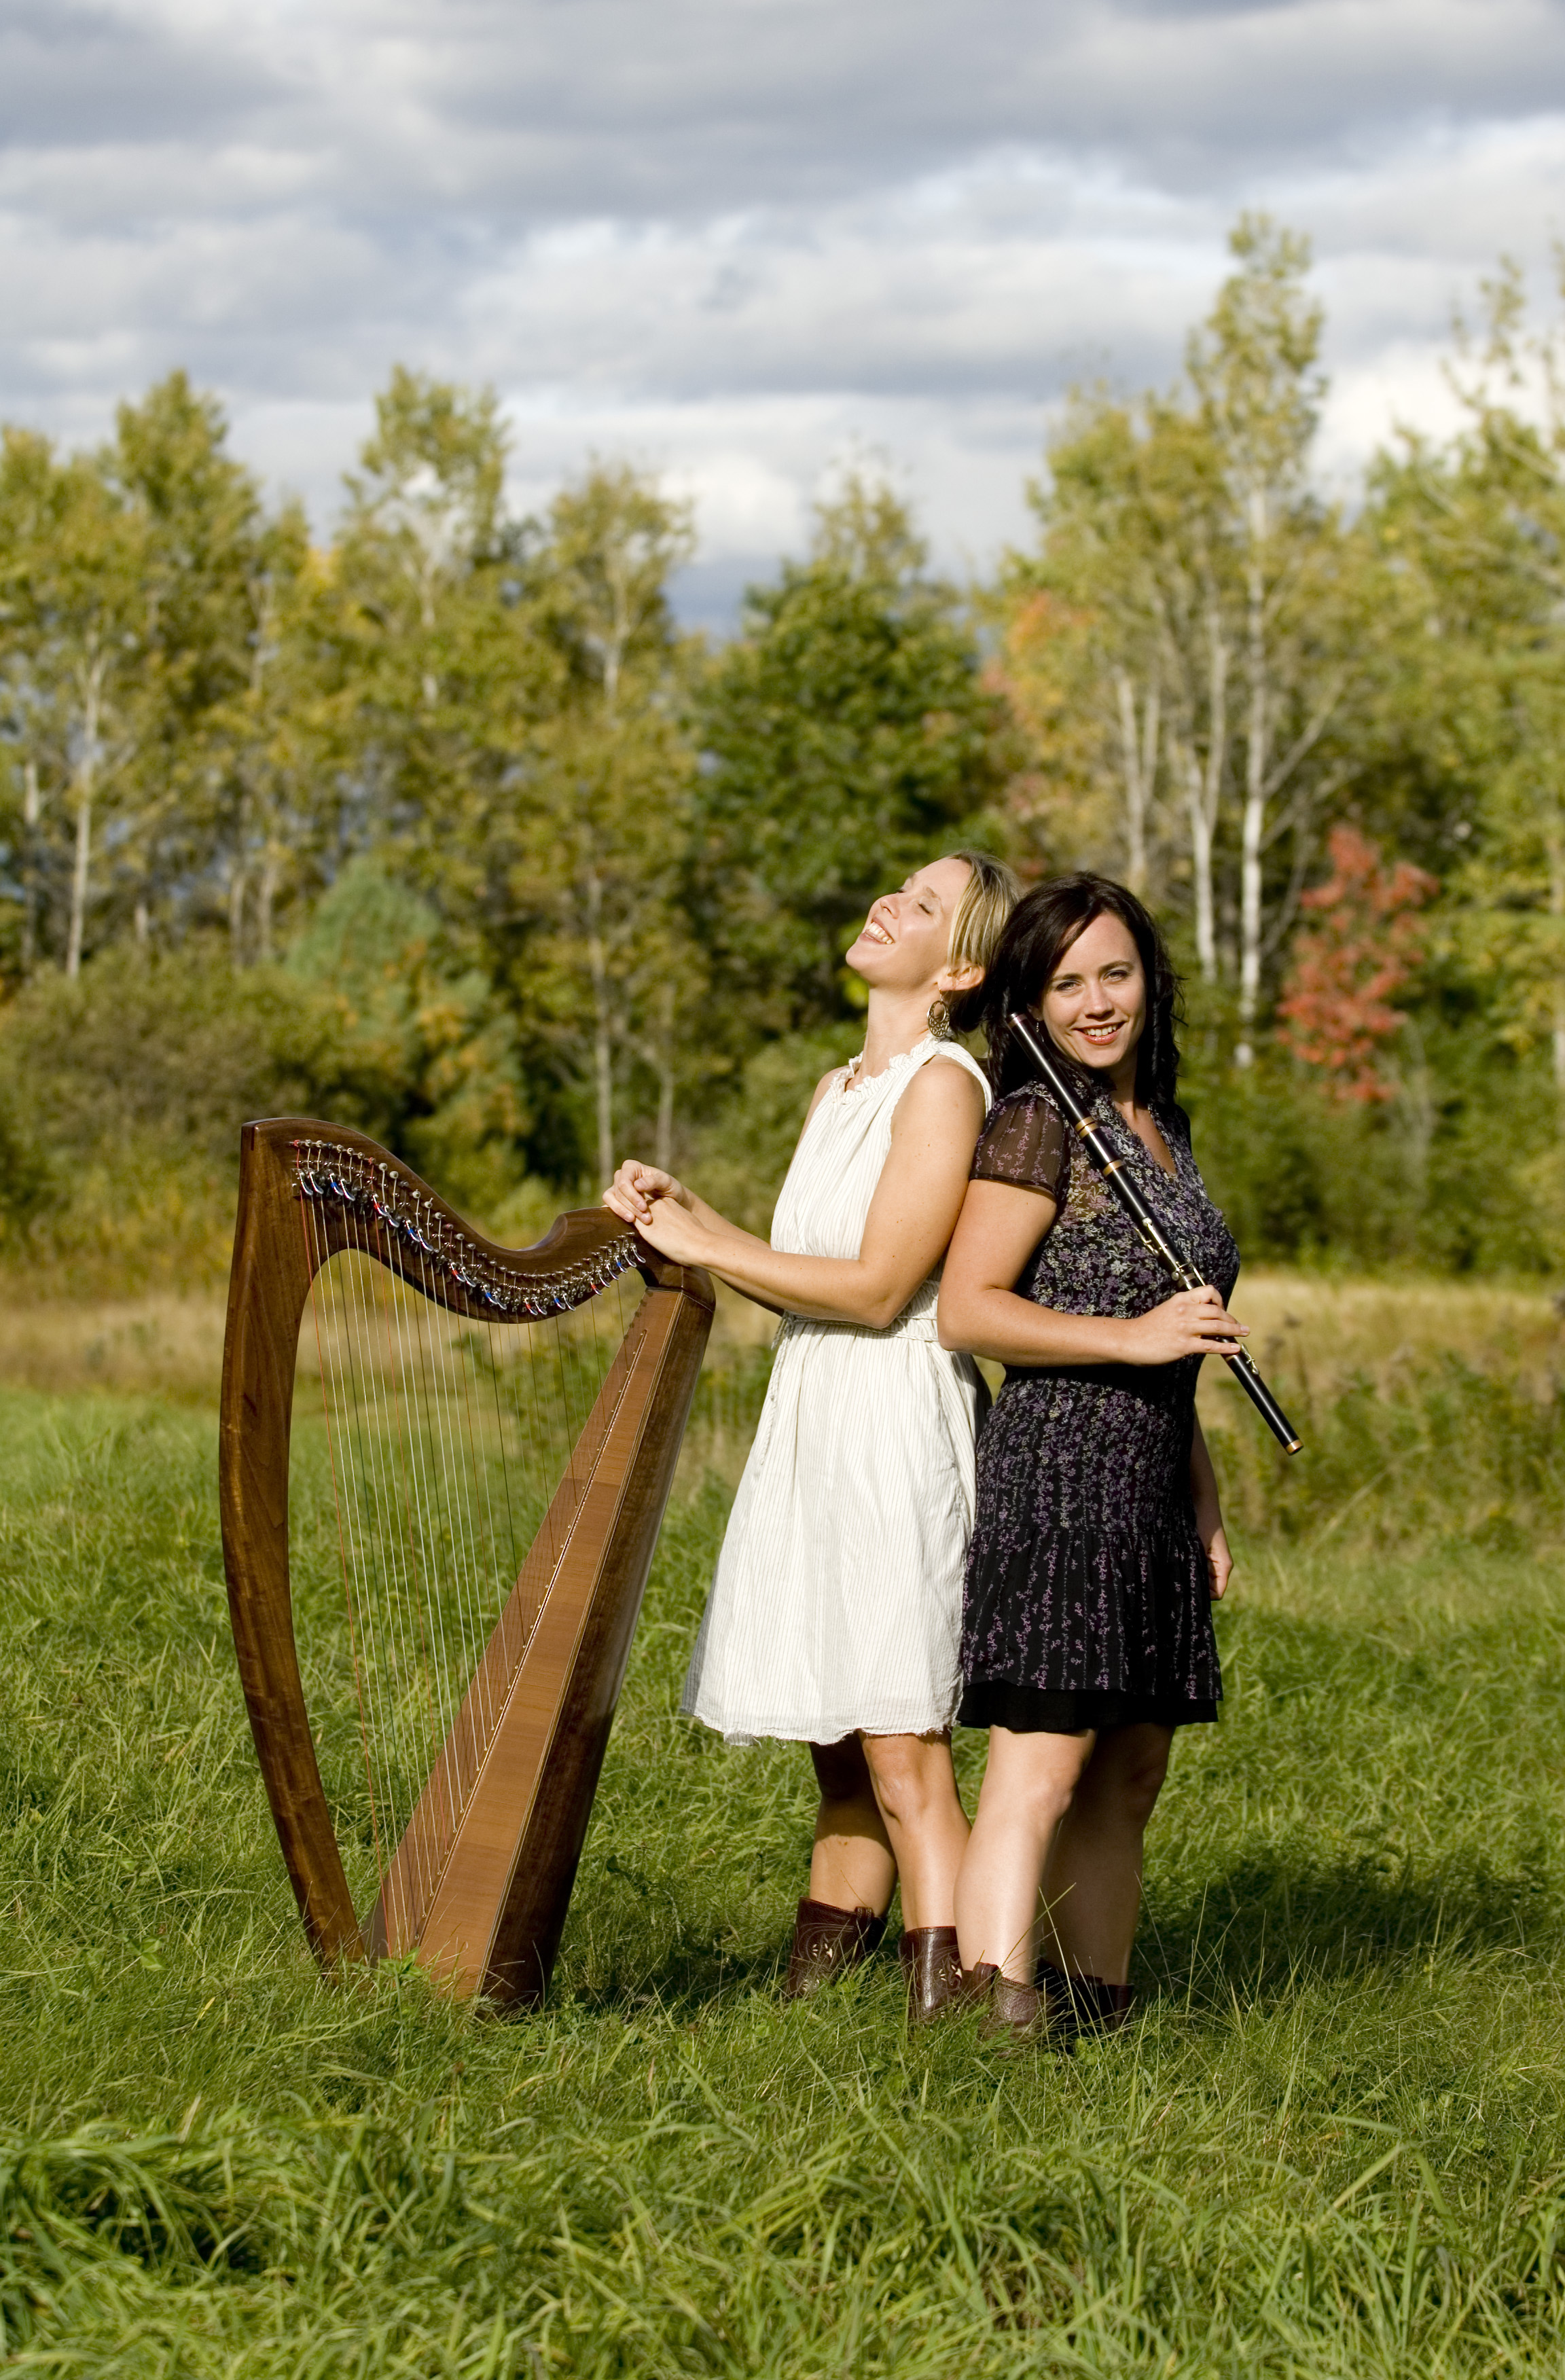 Danielle Langord, harpist, and Nicole Rabata, flutist, comprise the traditional Celtic duo, Naia. They will perform at 4 p.m. Sunday, July 24 at the First Congregational Church of Camden. The concert is free of charge, and a reception will follow.